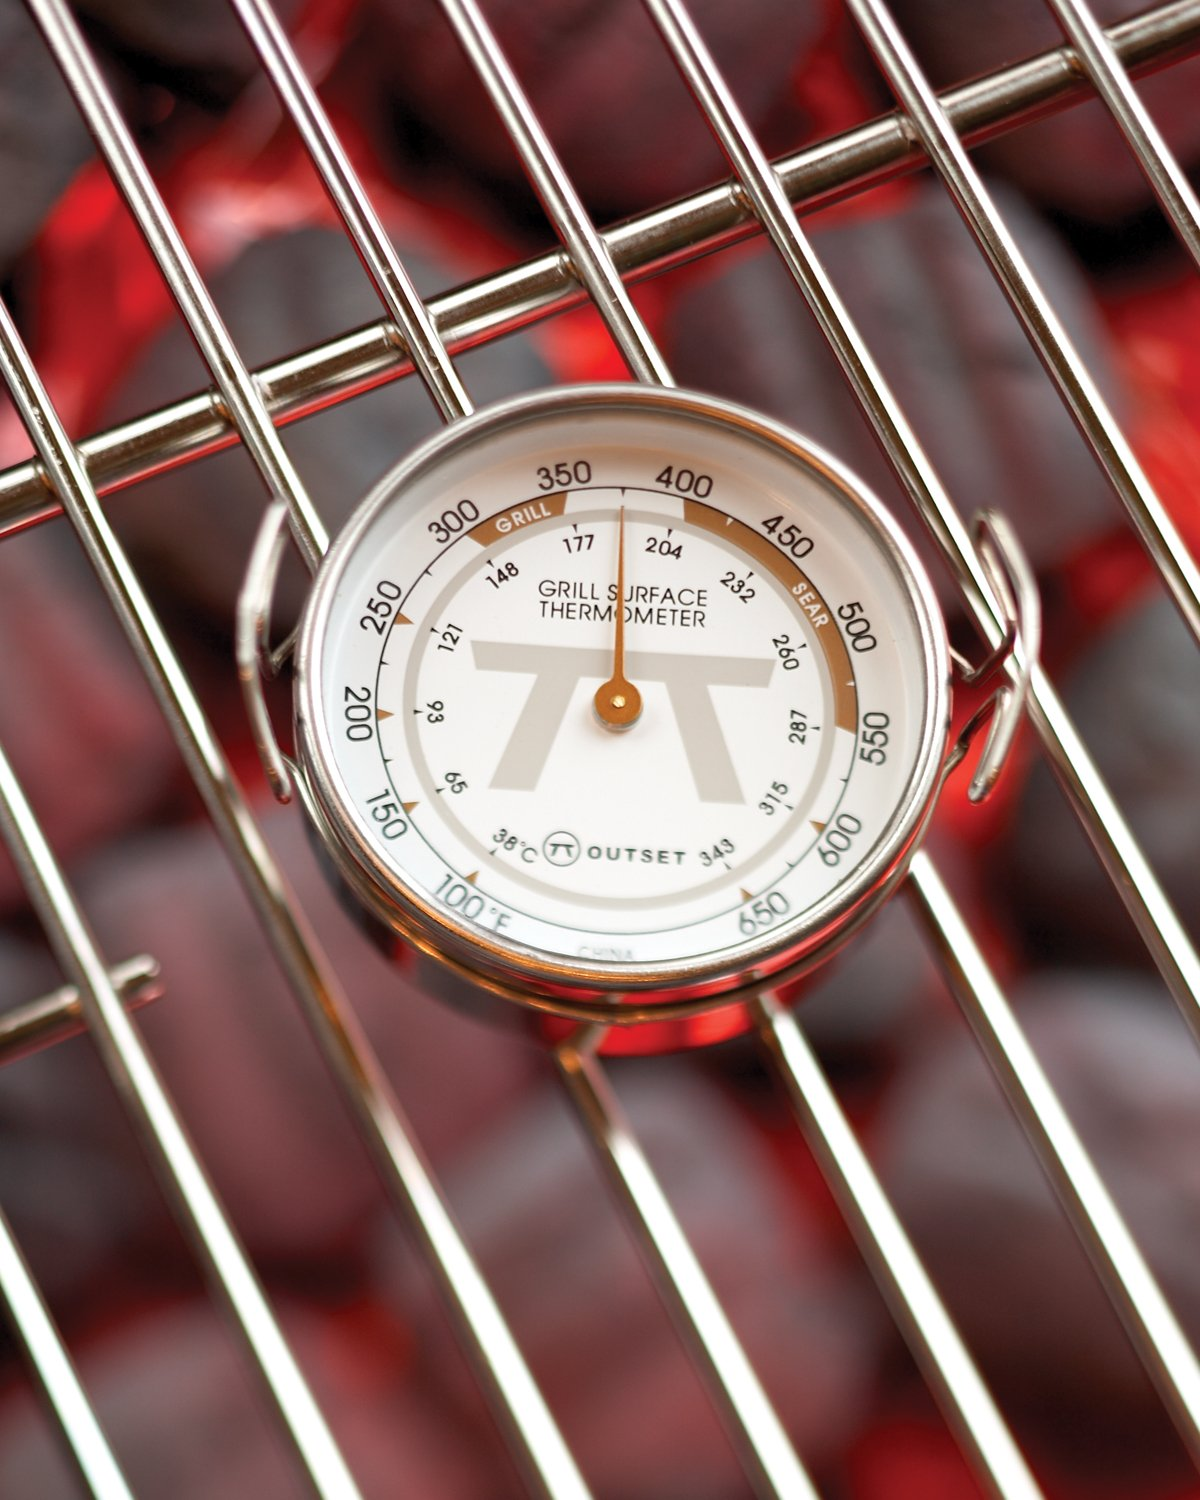 amazon com outset f810 grill surface thermometer gas grill